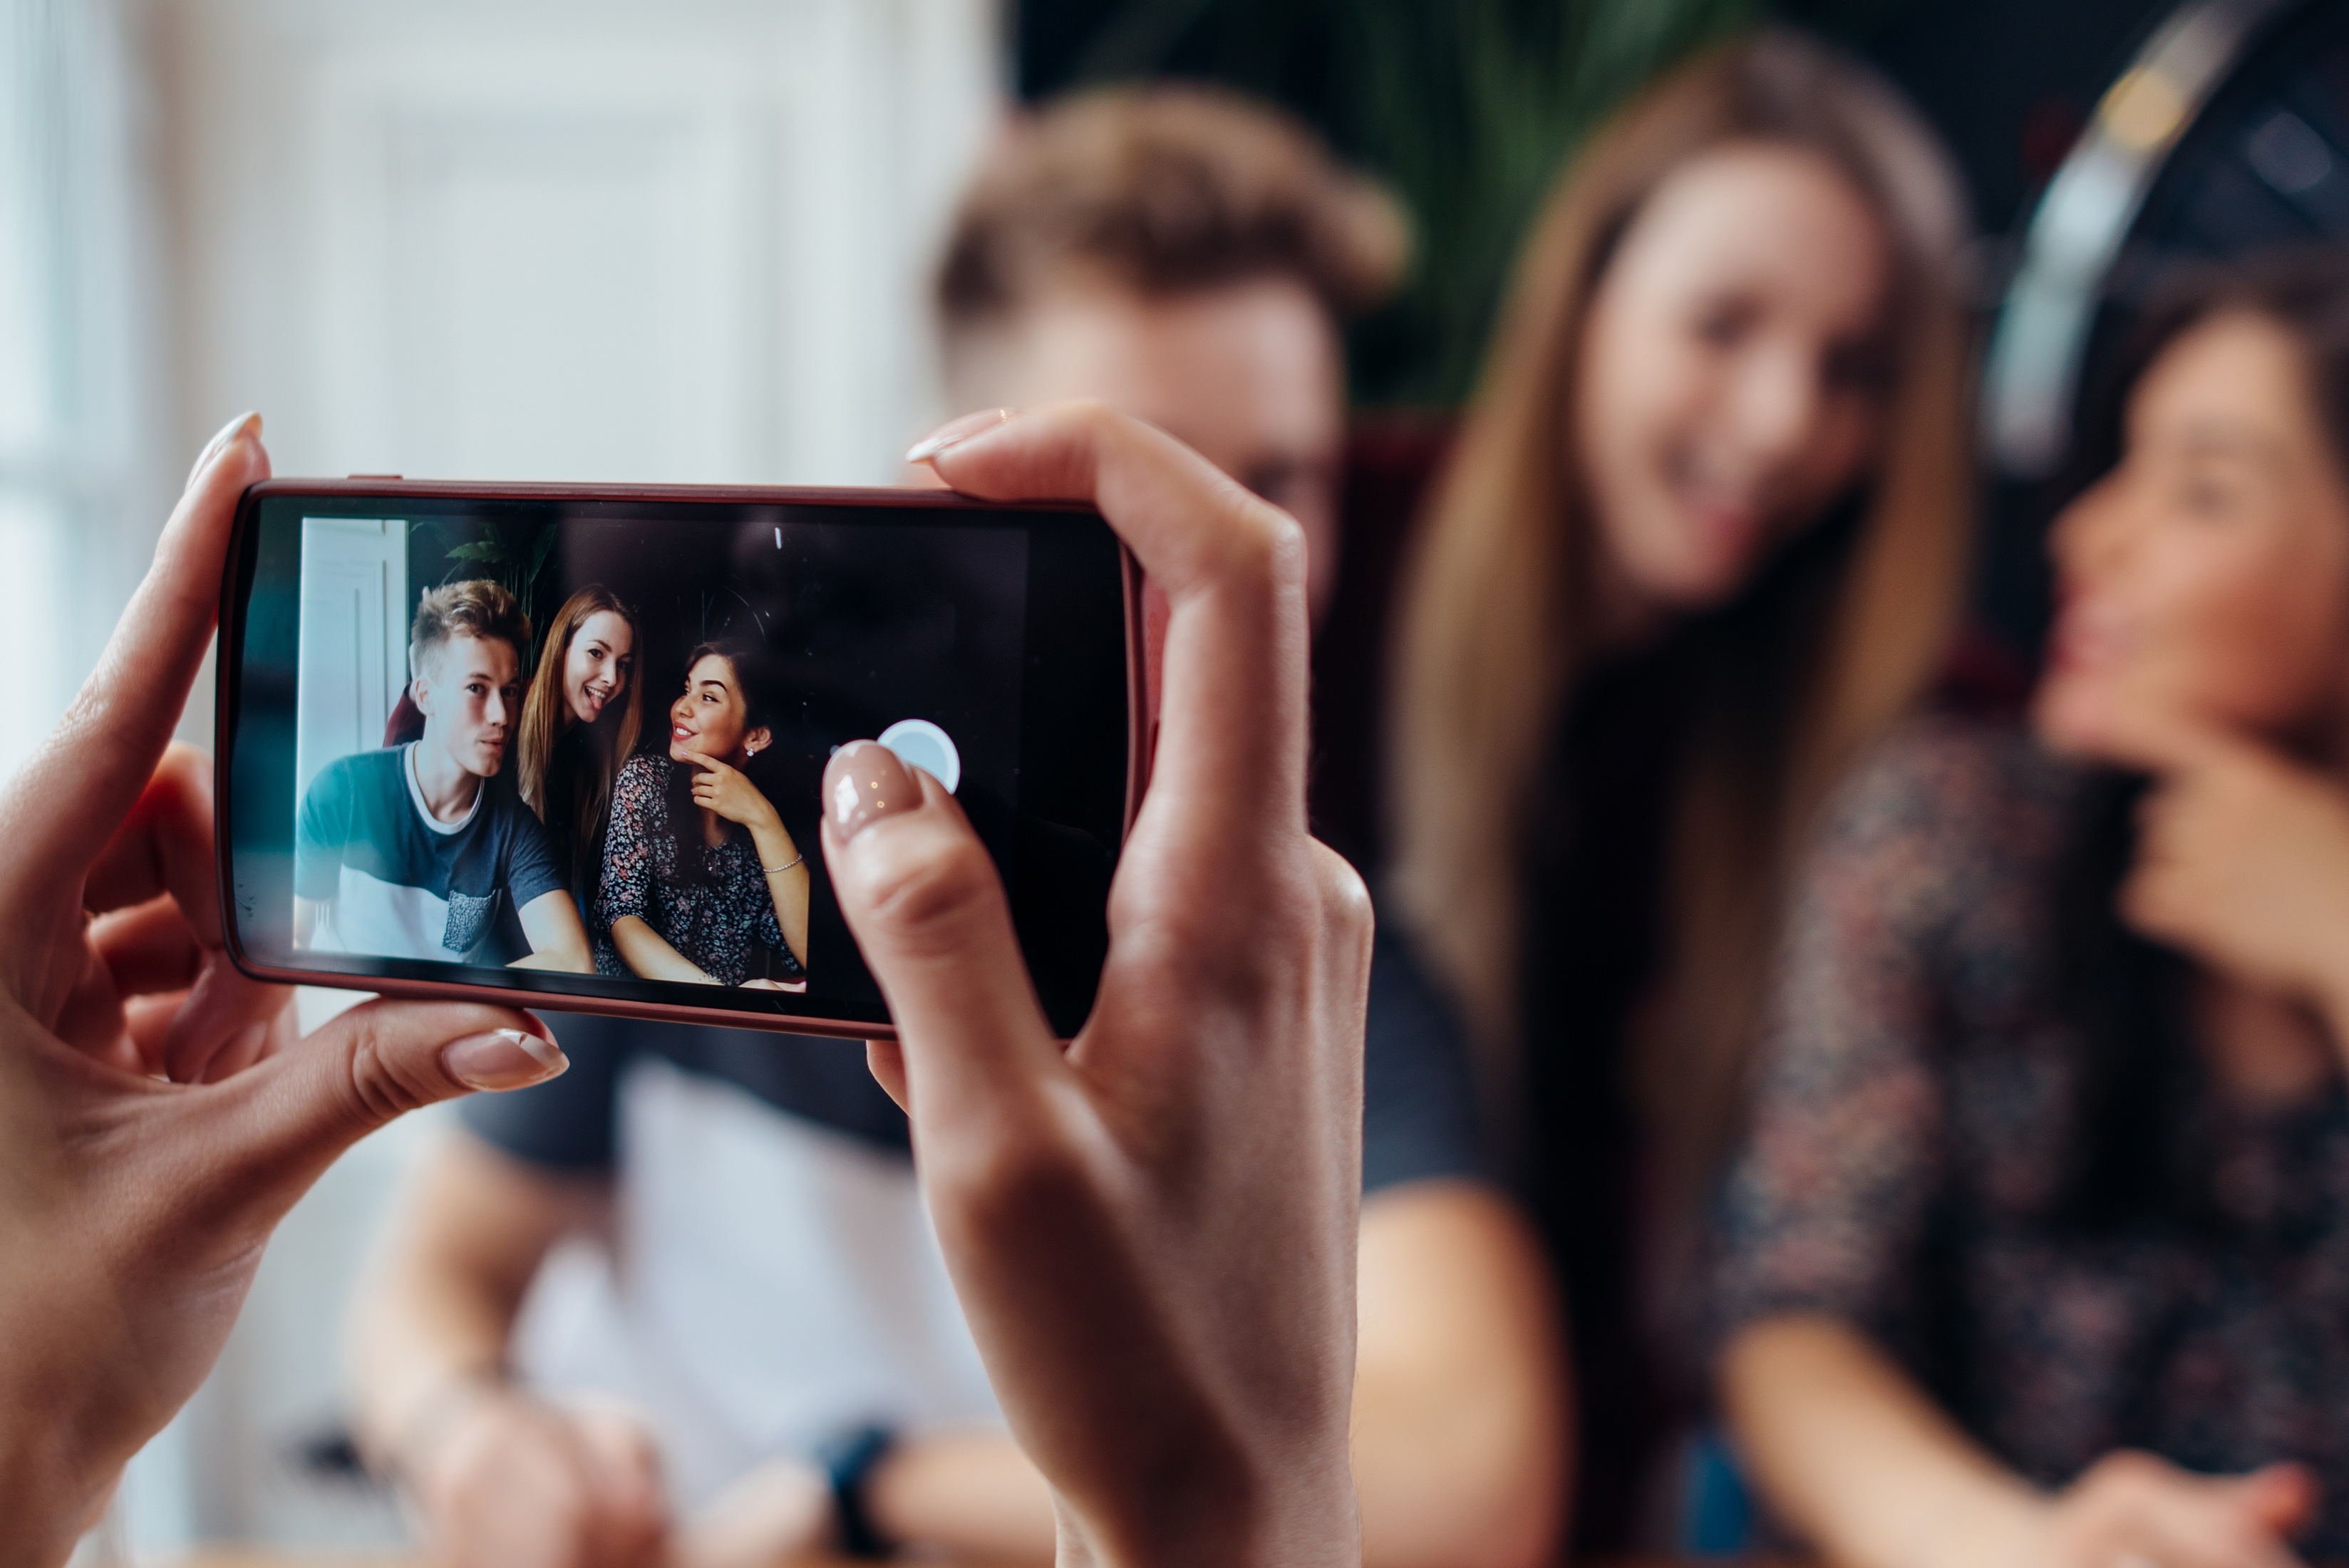 Instagram's New TV Feature: A Good Idea for Brands?